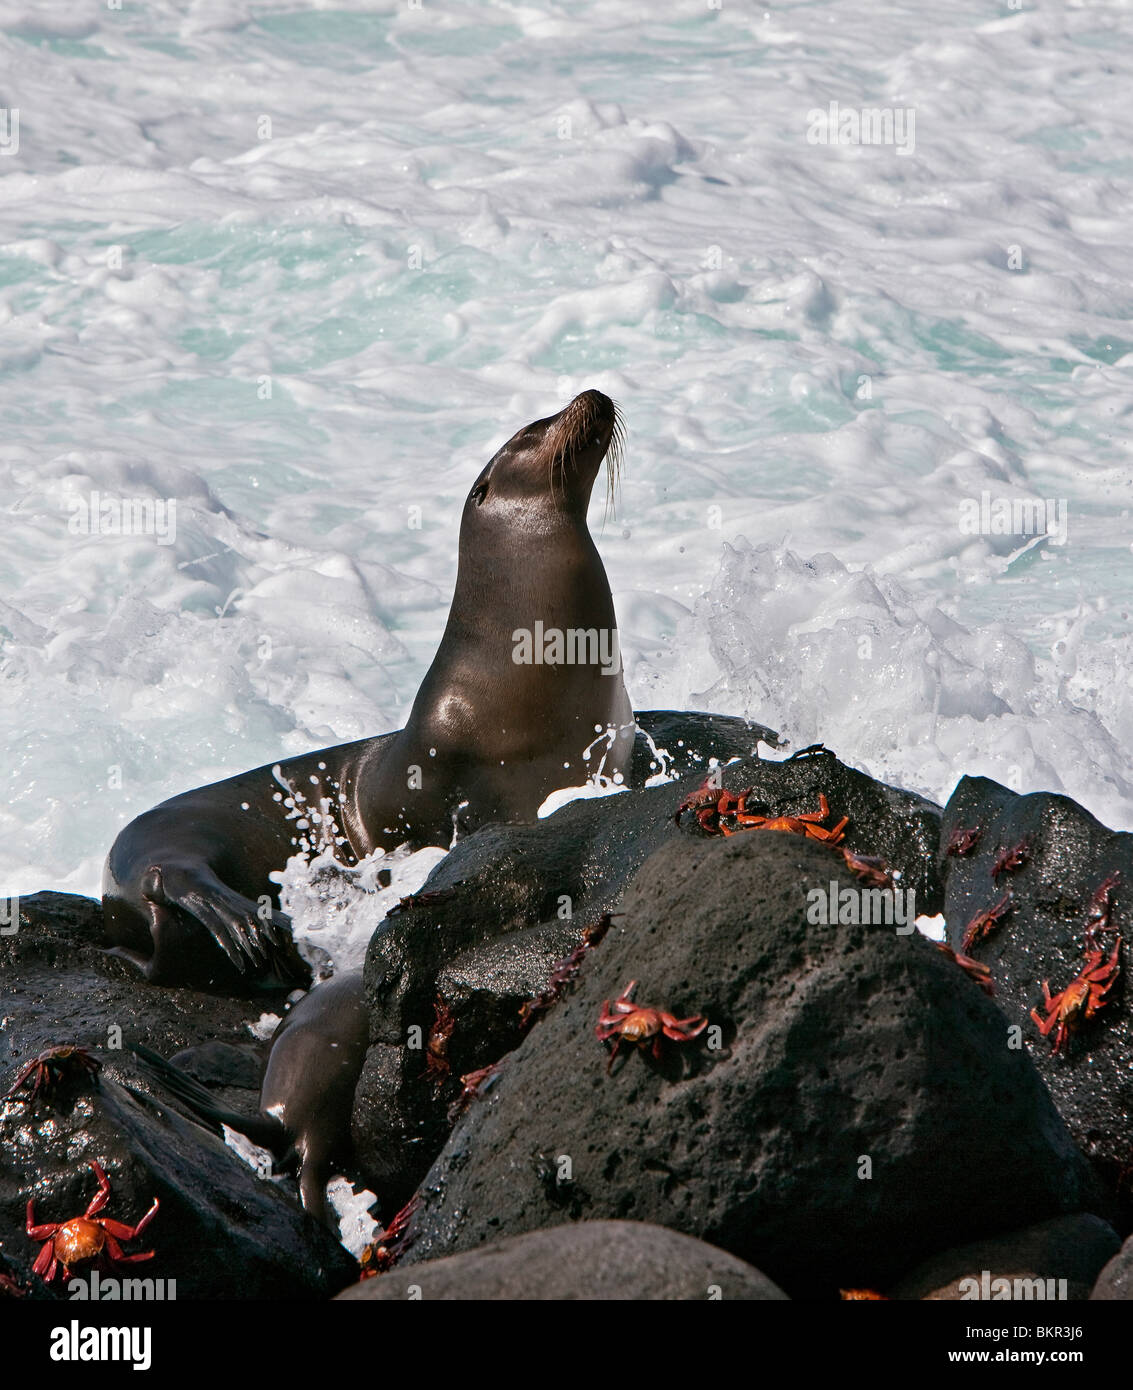 Galapagos Islands, A Galapagos sea lion and Sally lightfoot crabs on the shores of North Seymour island. - Stock Image